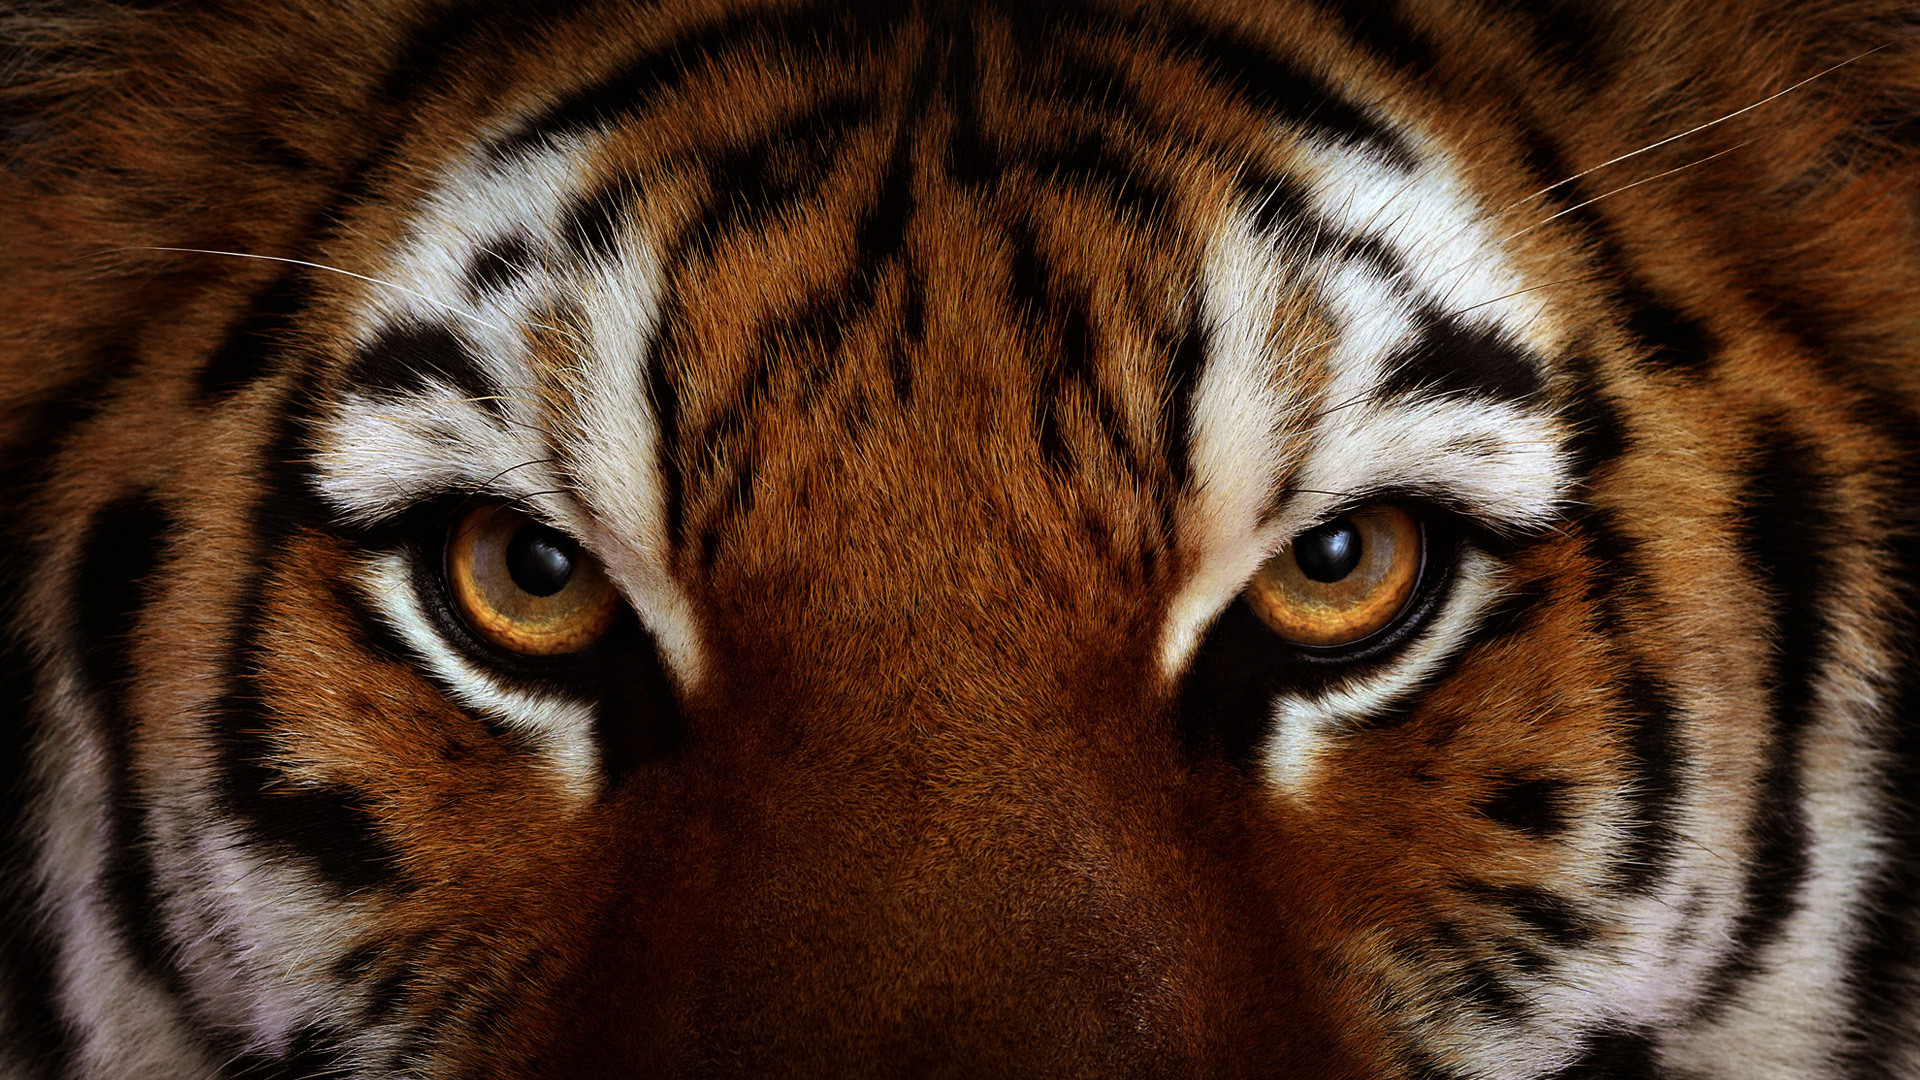 1920x1080 tiger wallpaper full hd 65 images - Animal 1920x1080 ...